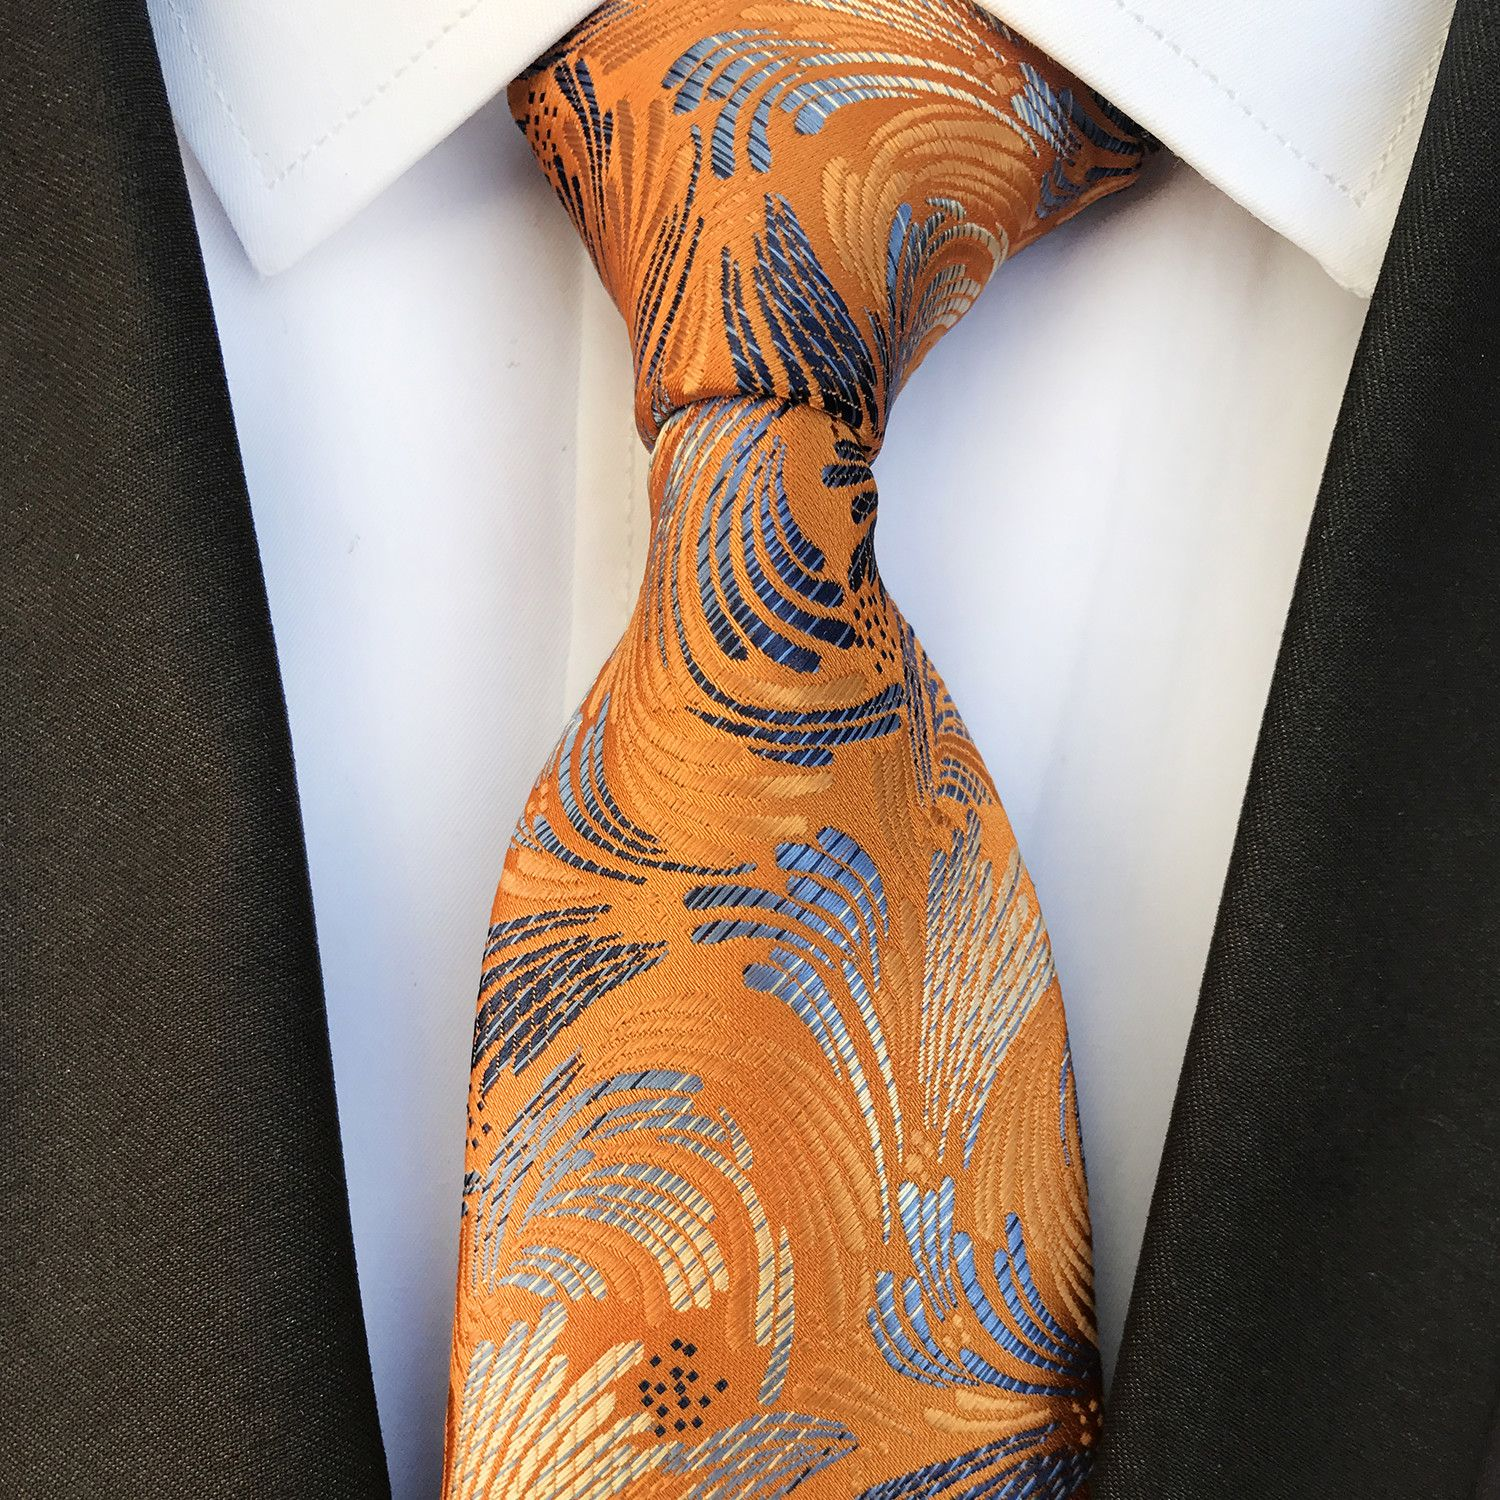 If clothes make the man, then the right tie makes him